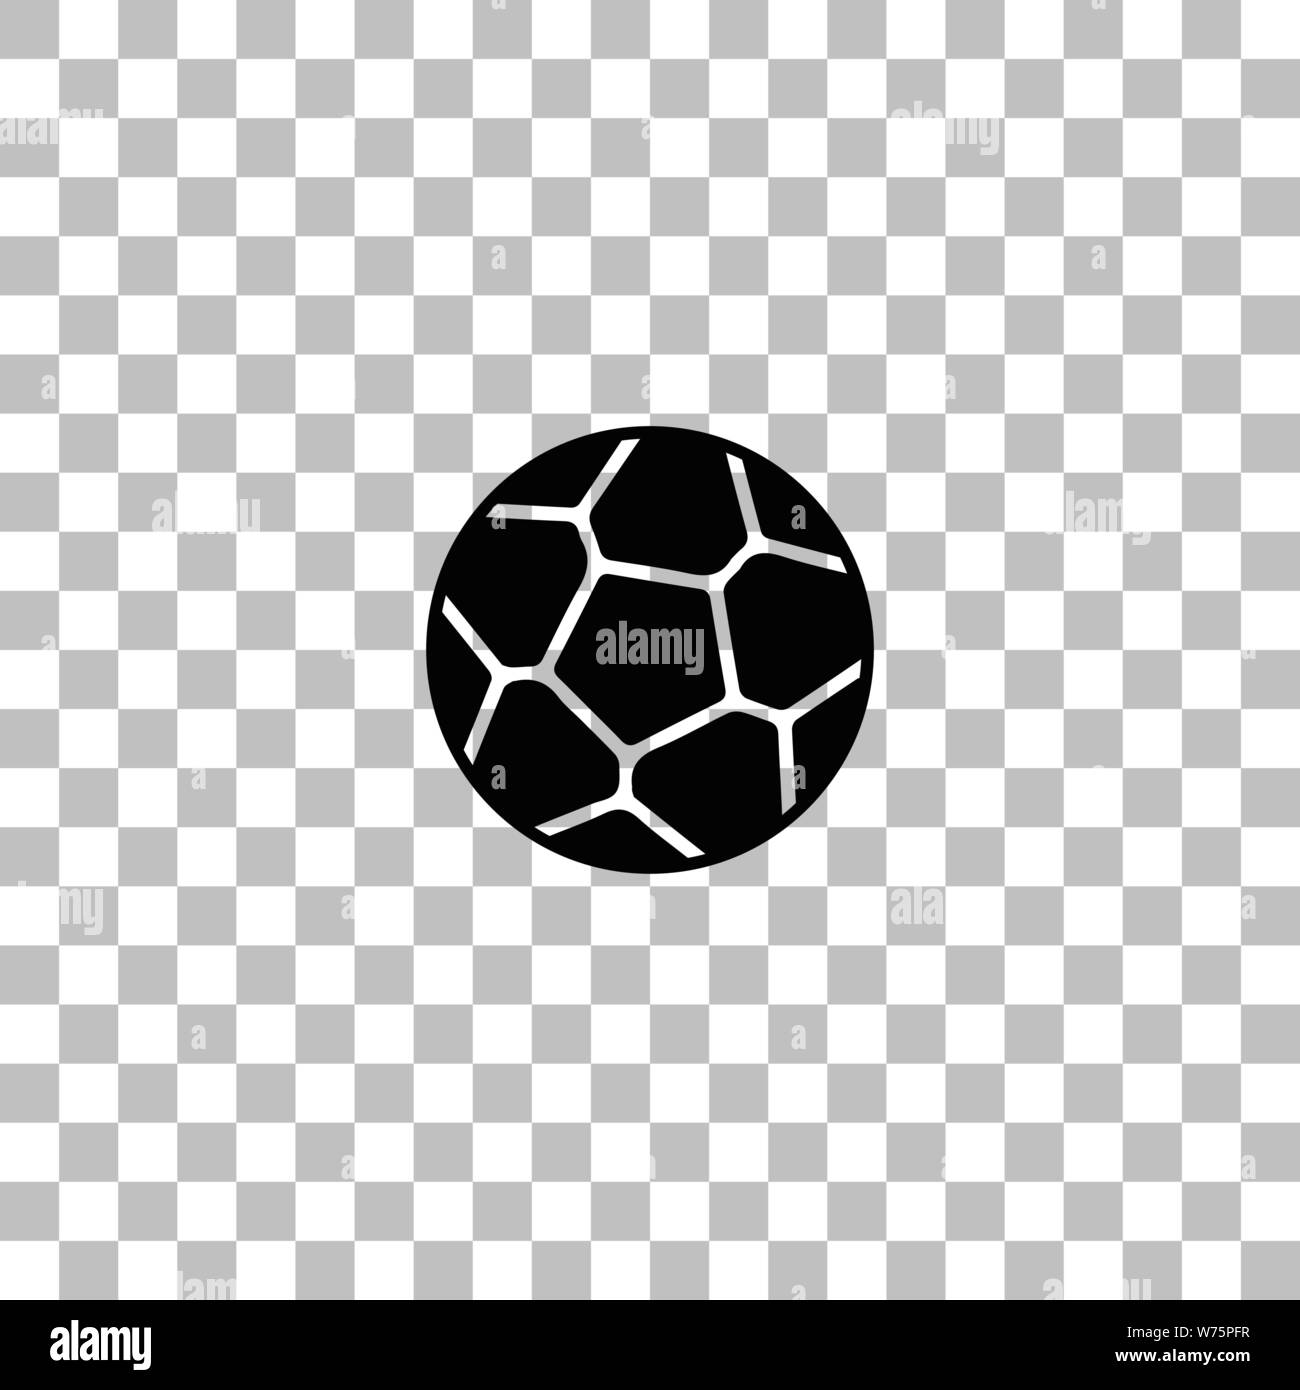 Soccer Ball Black Flat Icon On A Transparent Background Pictogram For Your Project Stock Vector Image Art Alamy